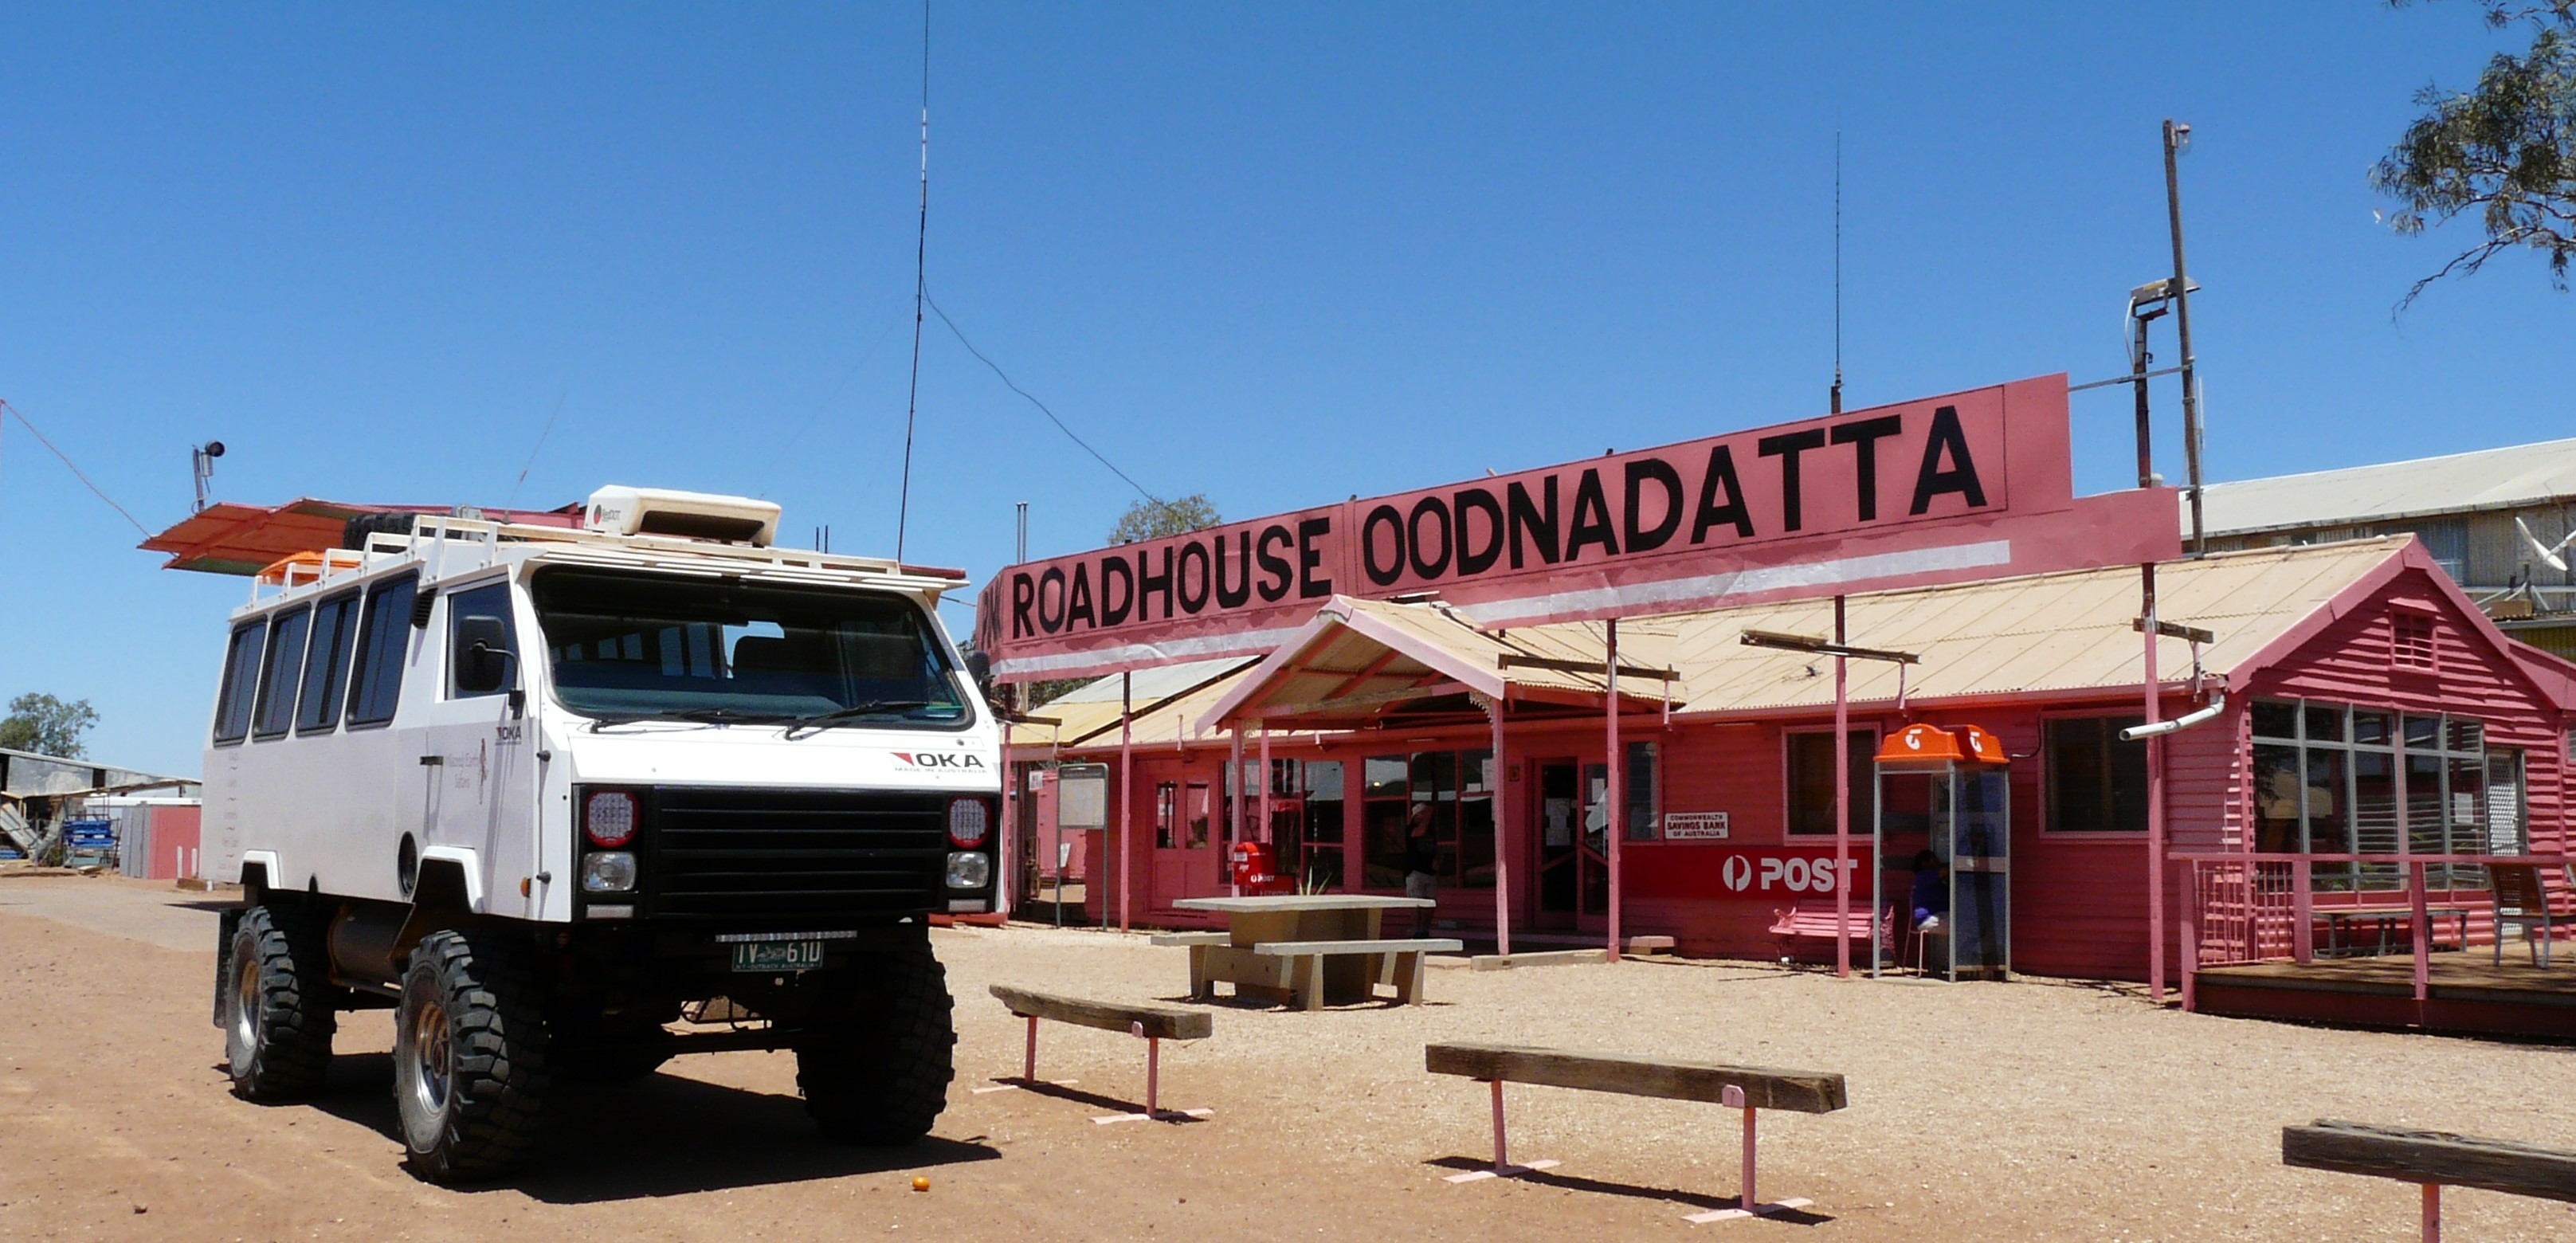 Famous Roadhouse, Oodnadatta